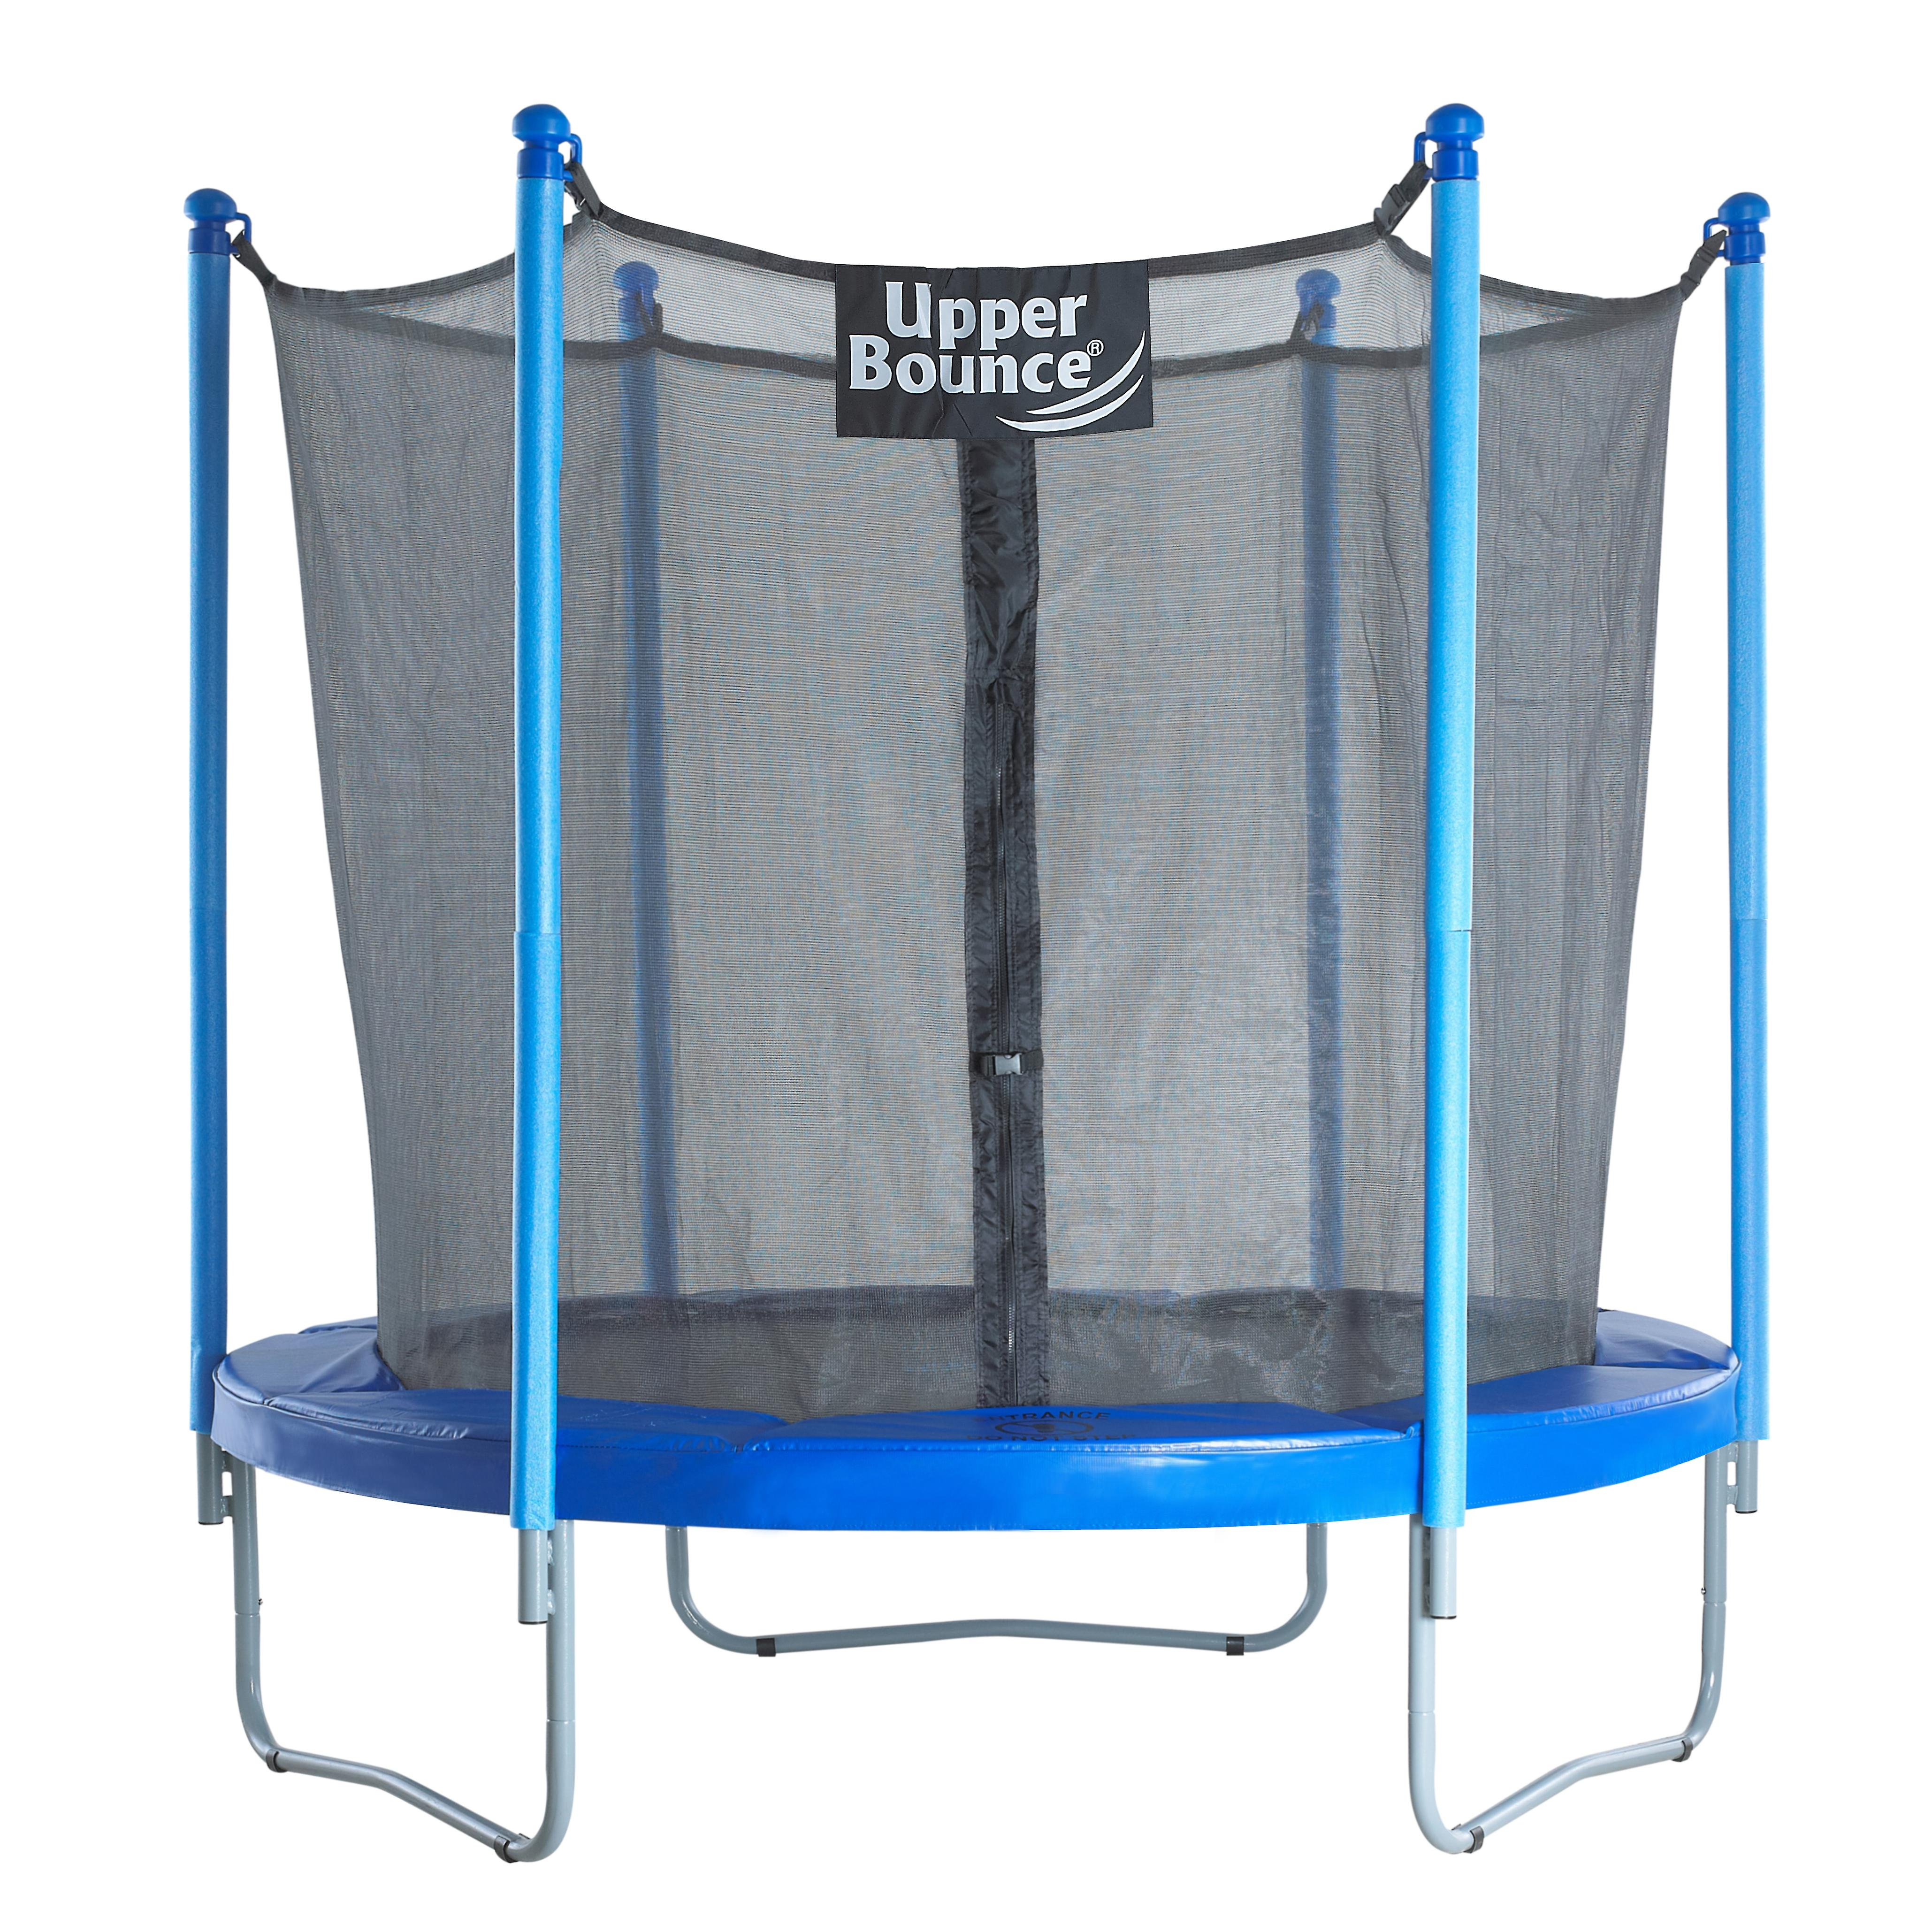 Upper Bounce® 7.5 FT. Trampoline & Enclosure Set equipped with the New